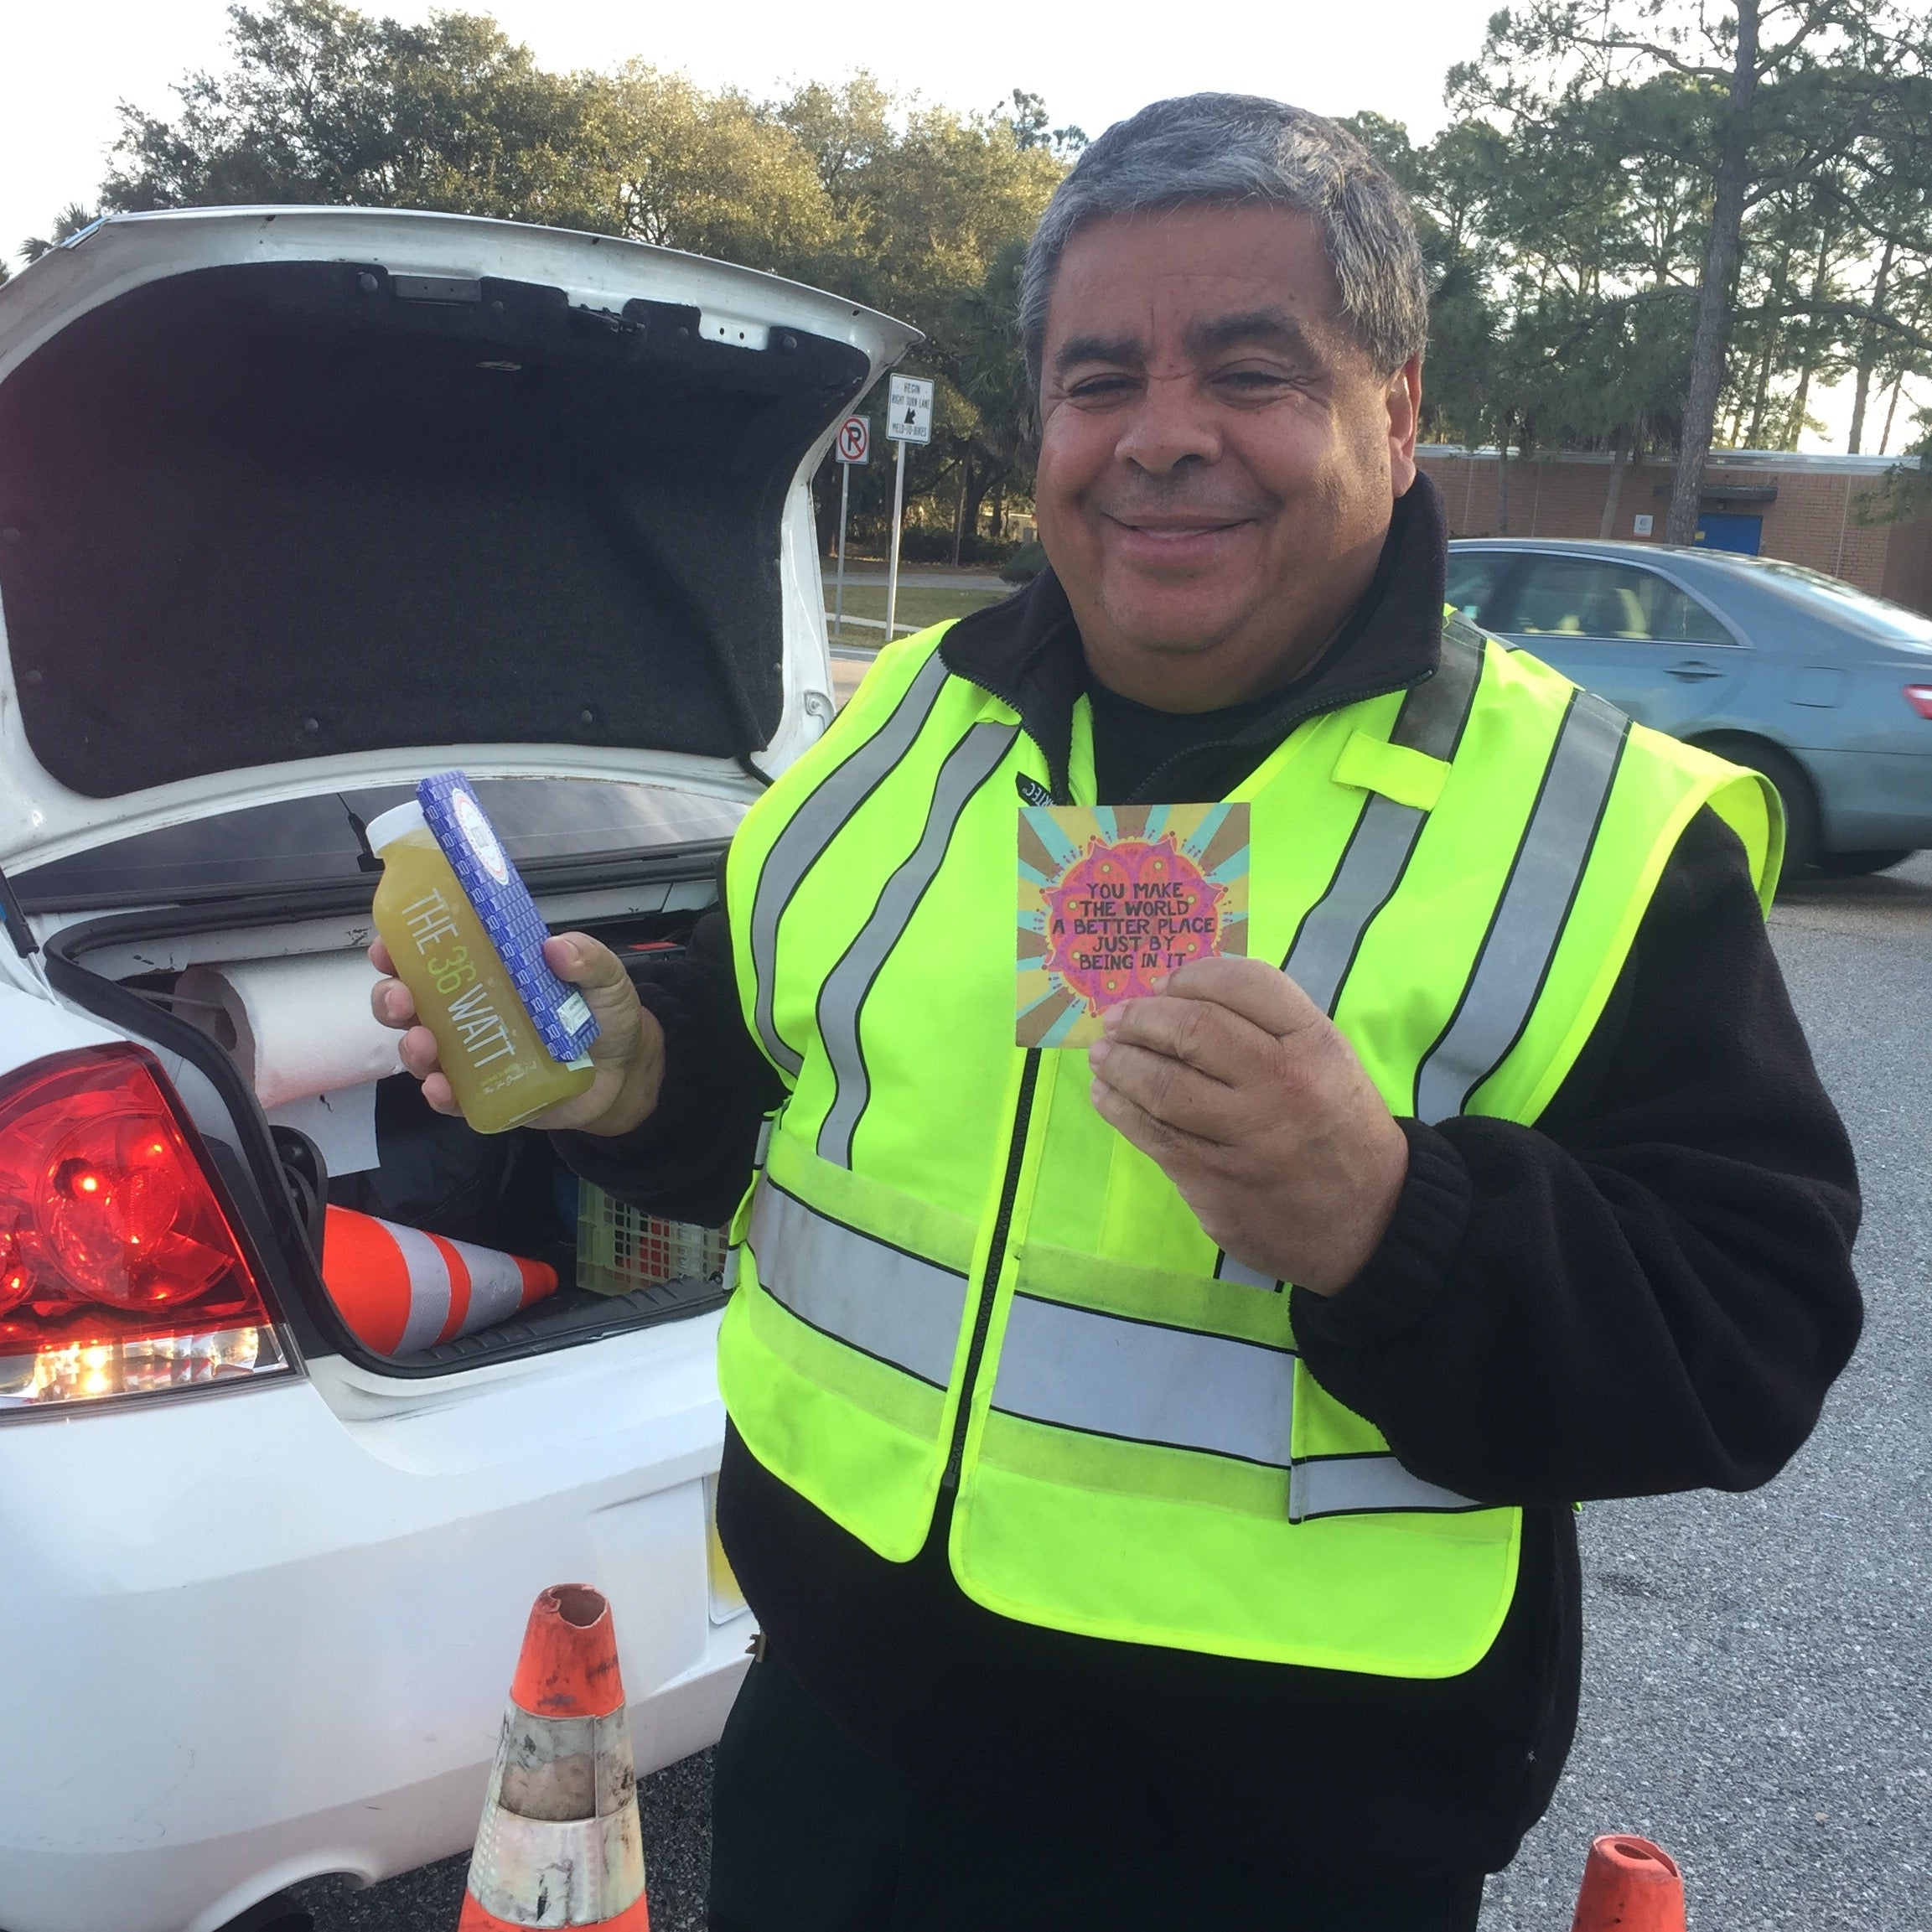 Our local traffic officer holding an organic juice and a chocolate bar